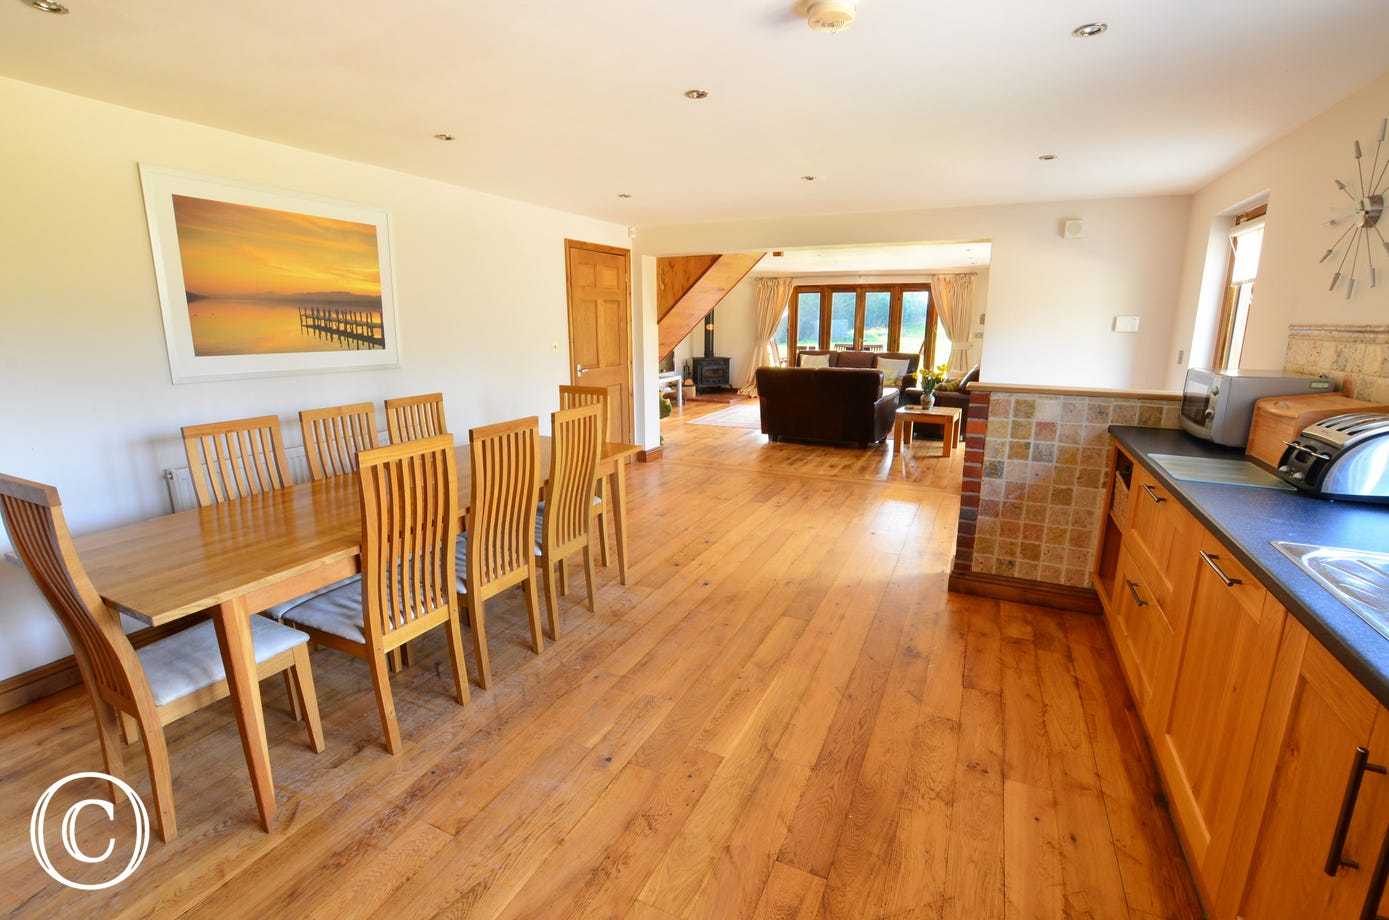 The spacious kitchen/dining room leads through to the lovely sitting area and has the added bonus of an utility room